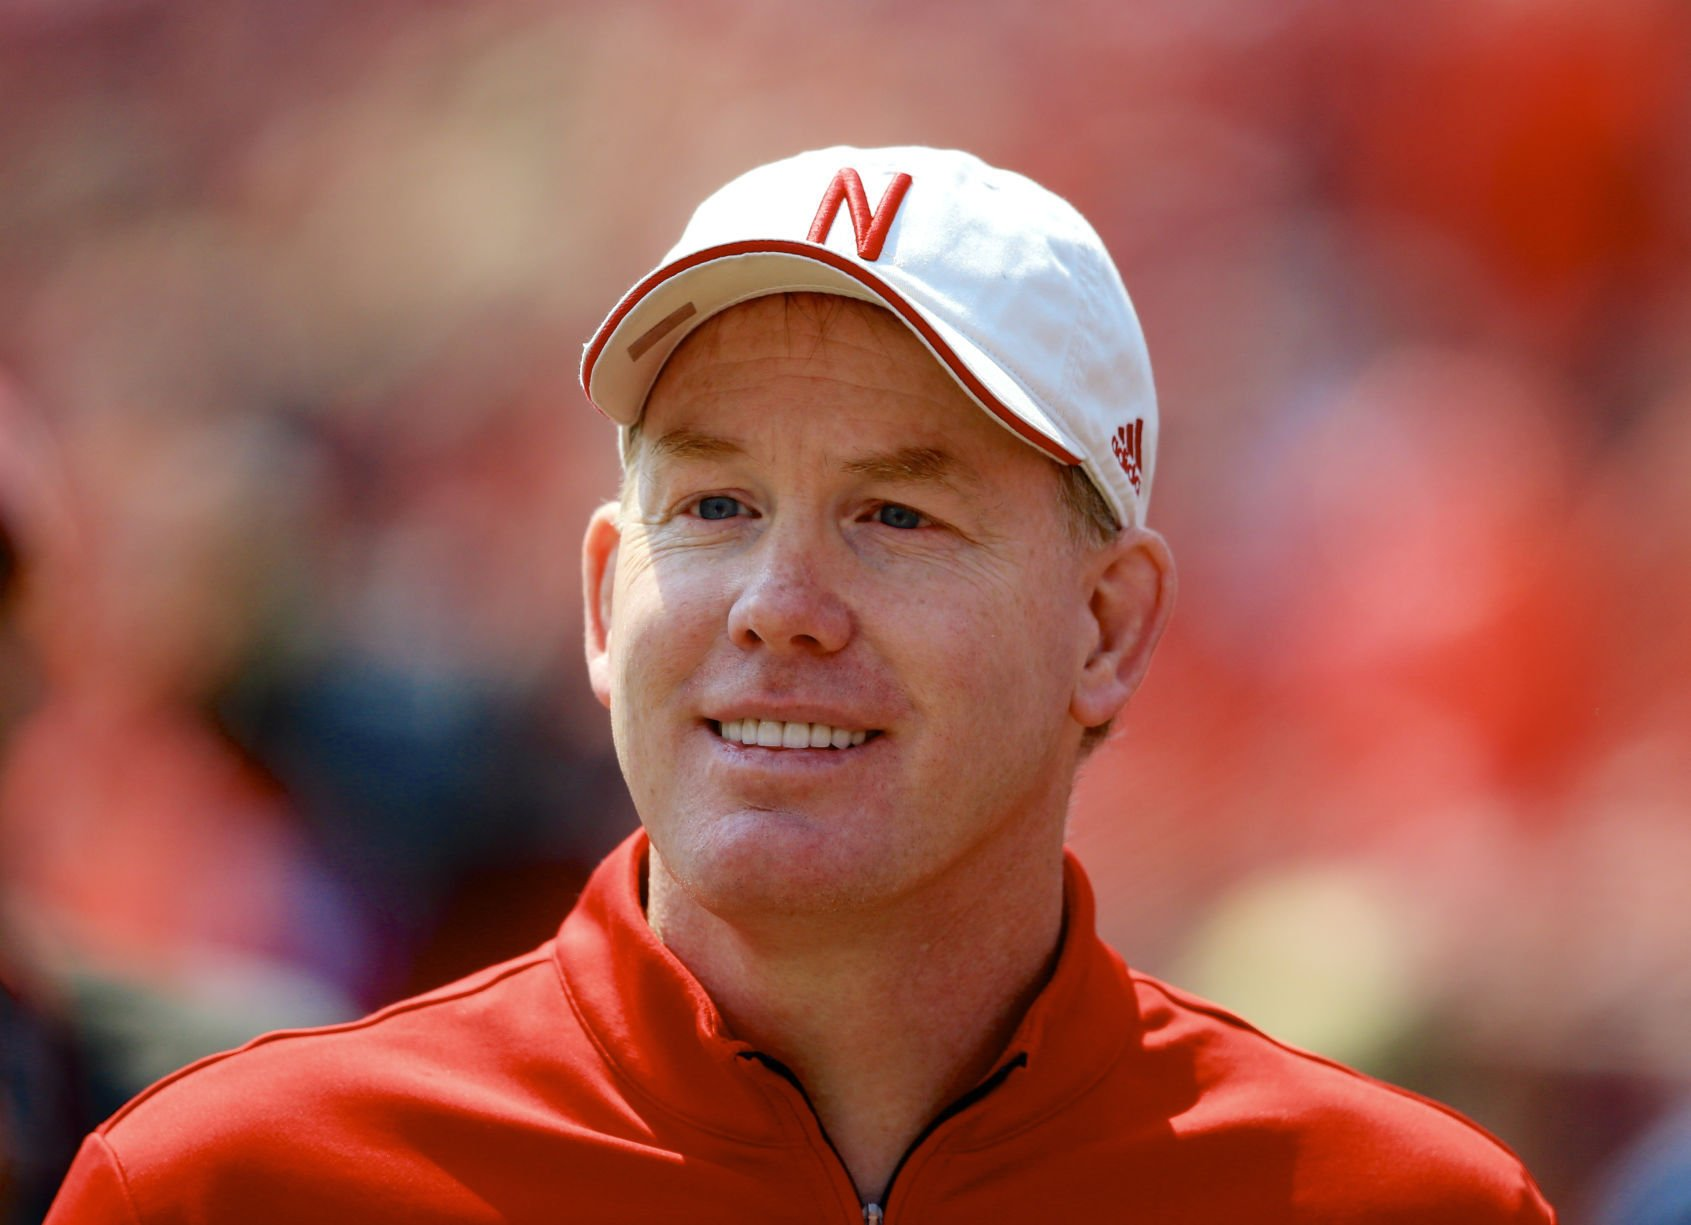 Nebraska fires AD Eichorst after loss to No